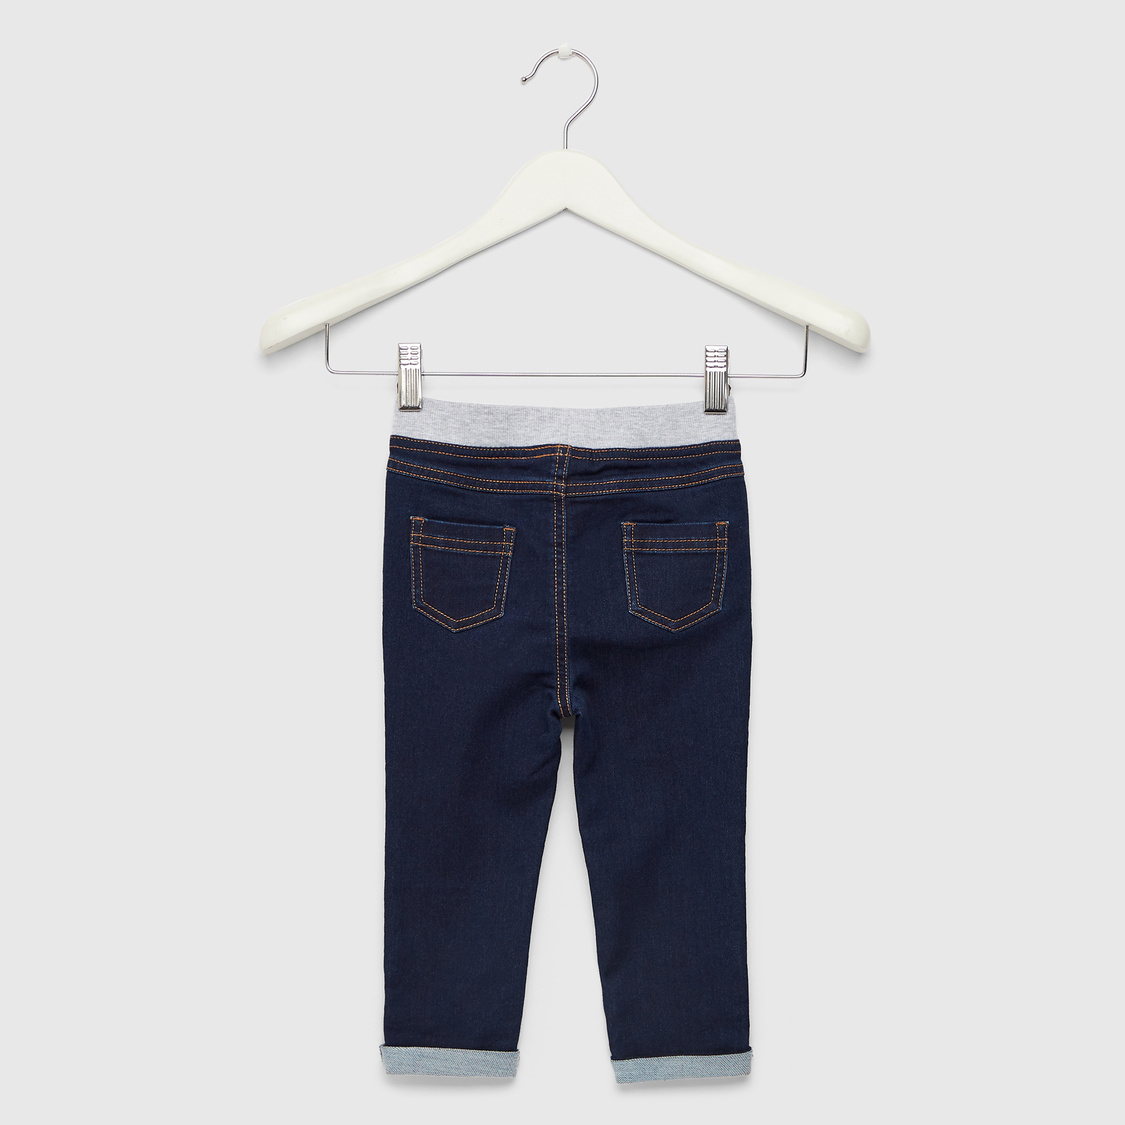 Solid Jeans with Pocket Detail and Drawstring Closure